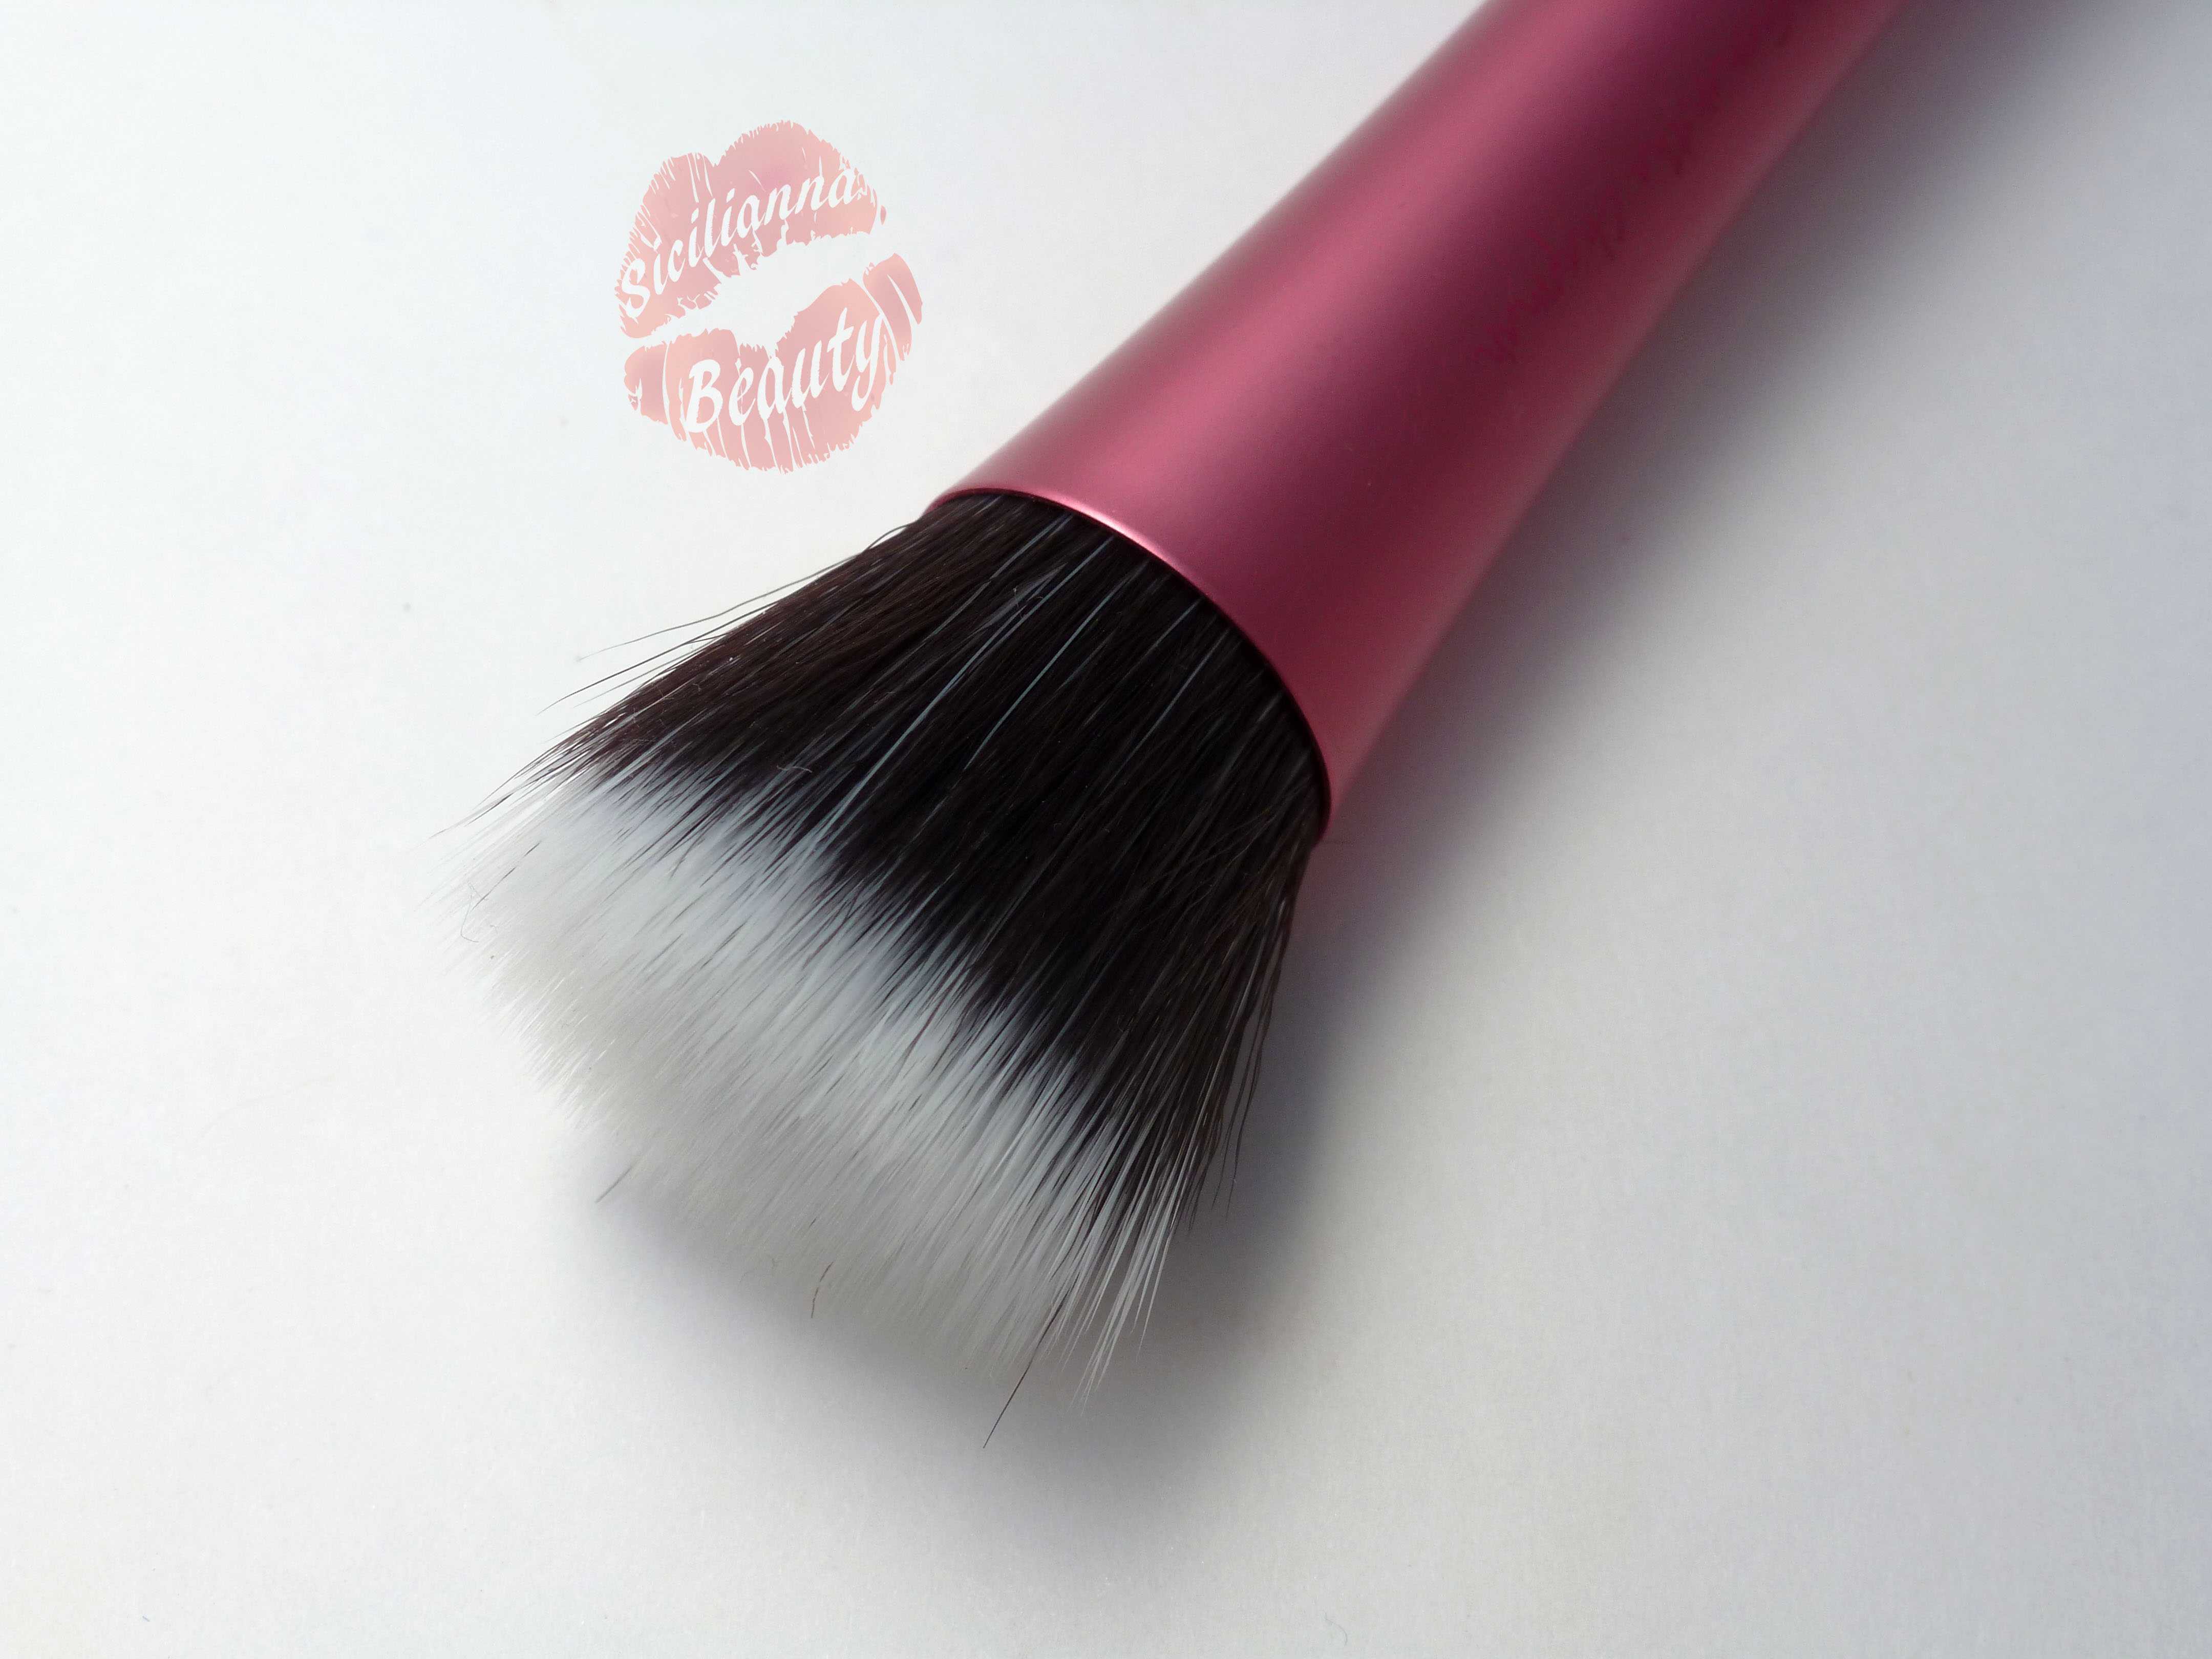 REVIEW: Real Techniques Stippling Brush